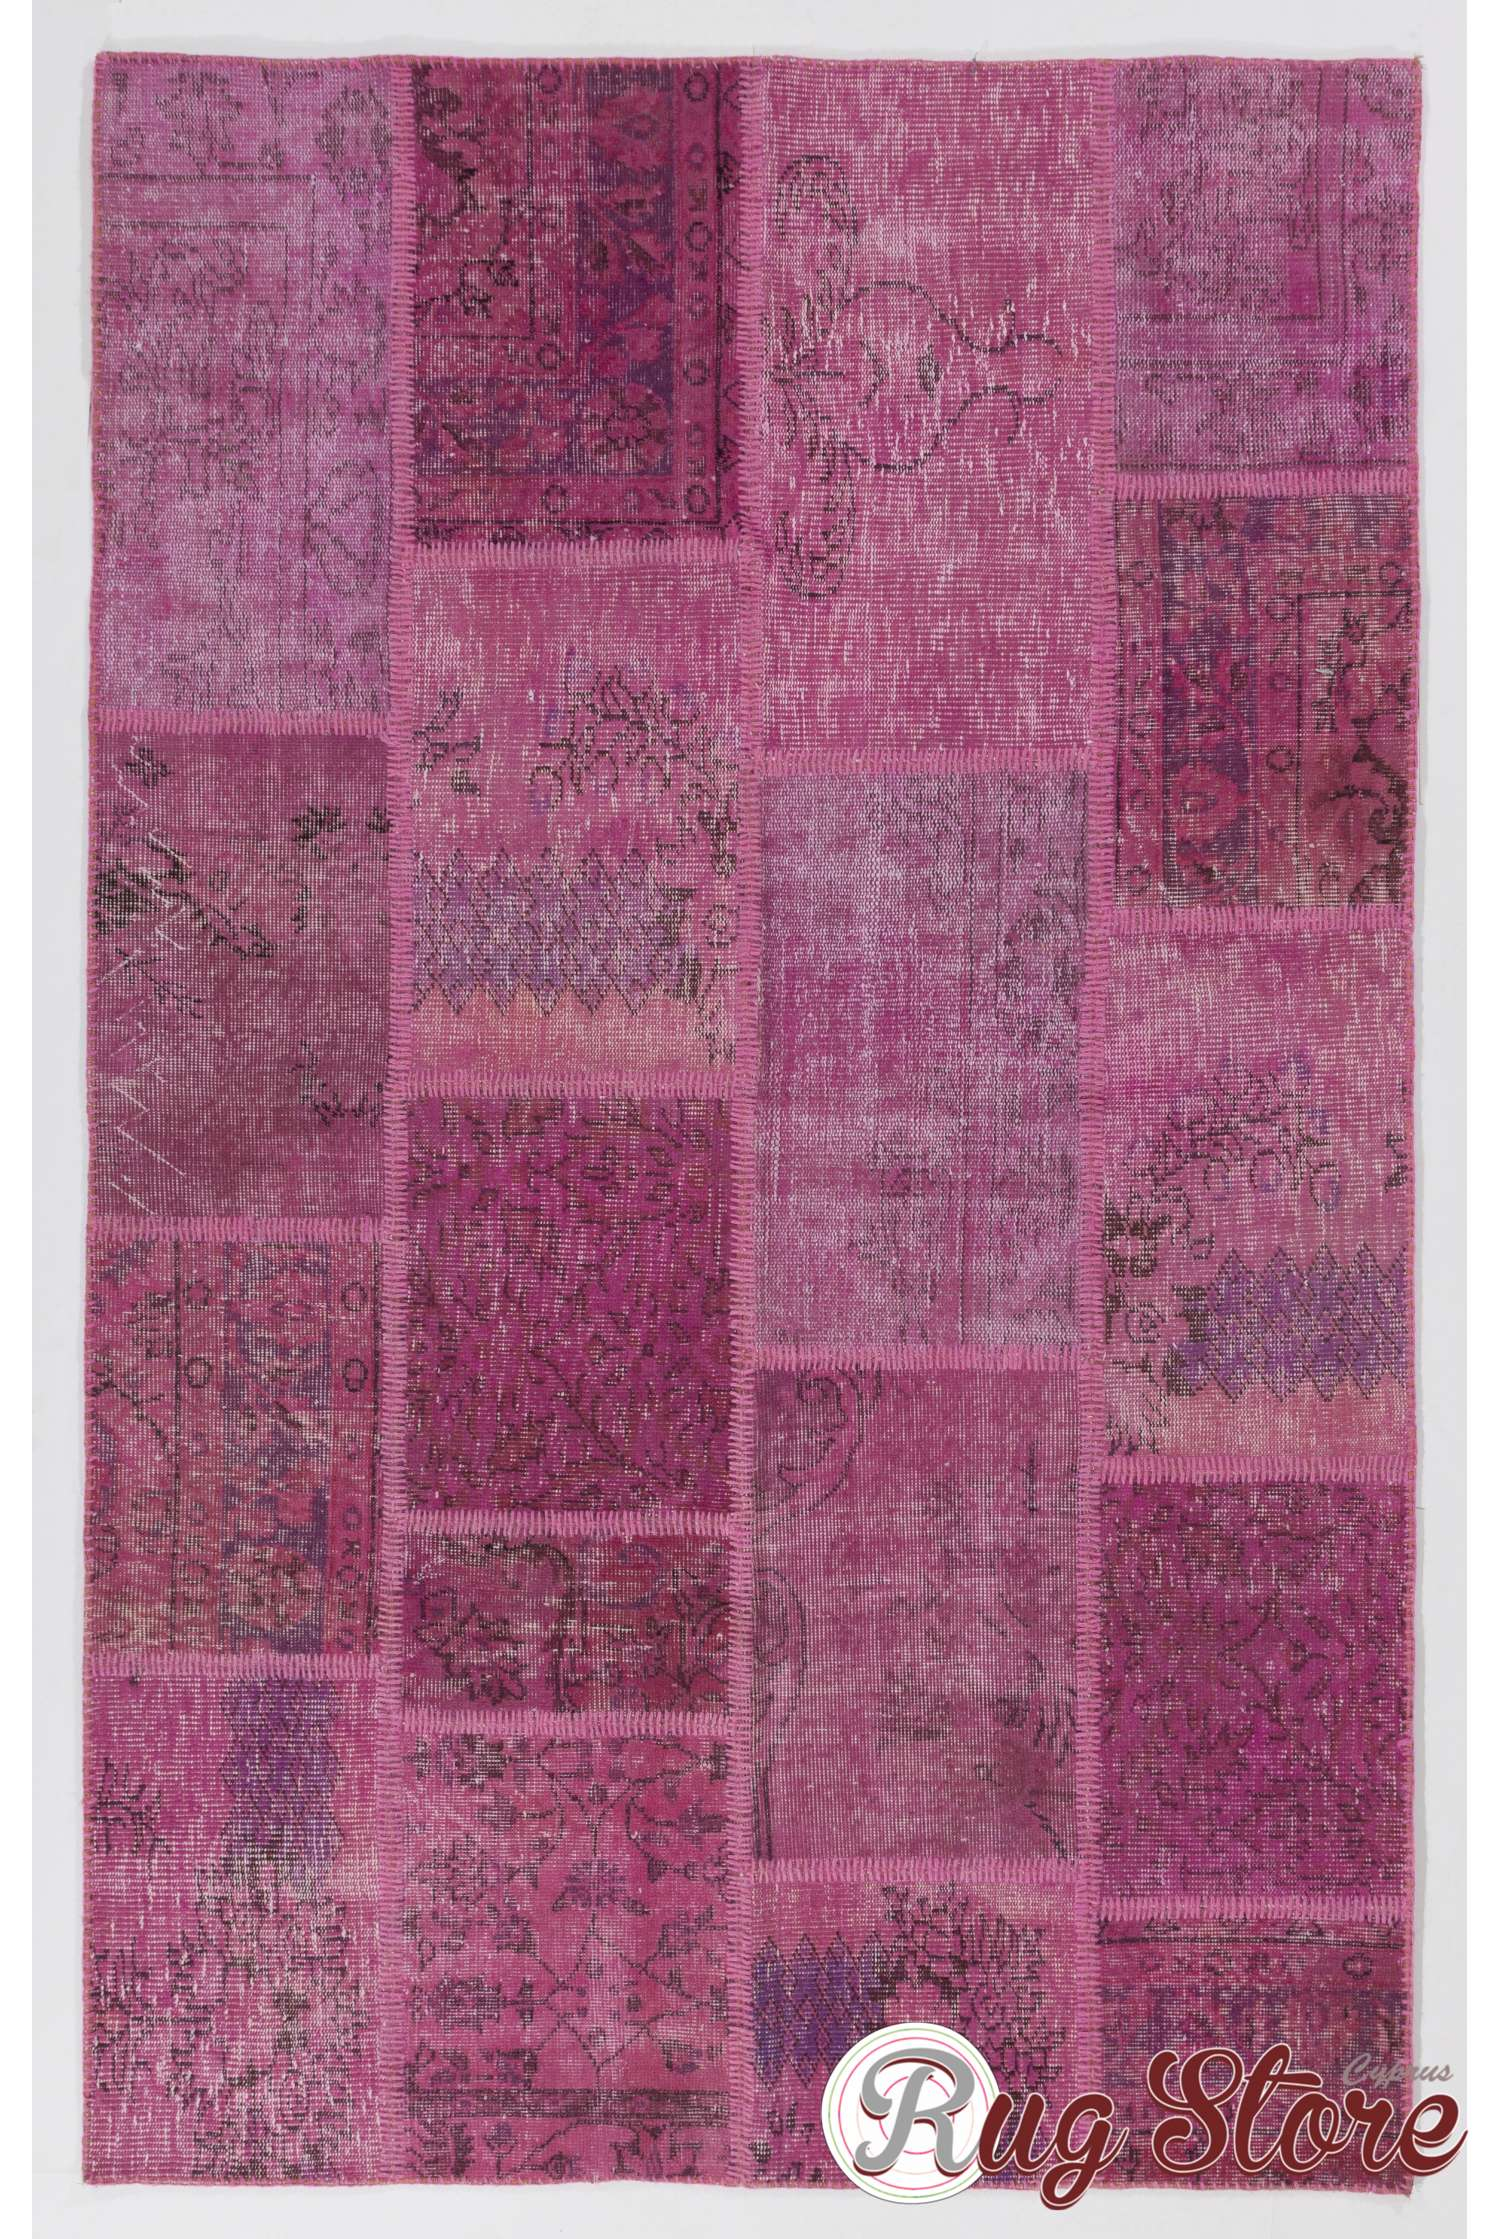 152x245 Cm Light Pink Patchwork Rug Handmade From Overdyed Distressed Vintage Turkish Rugs